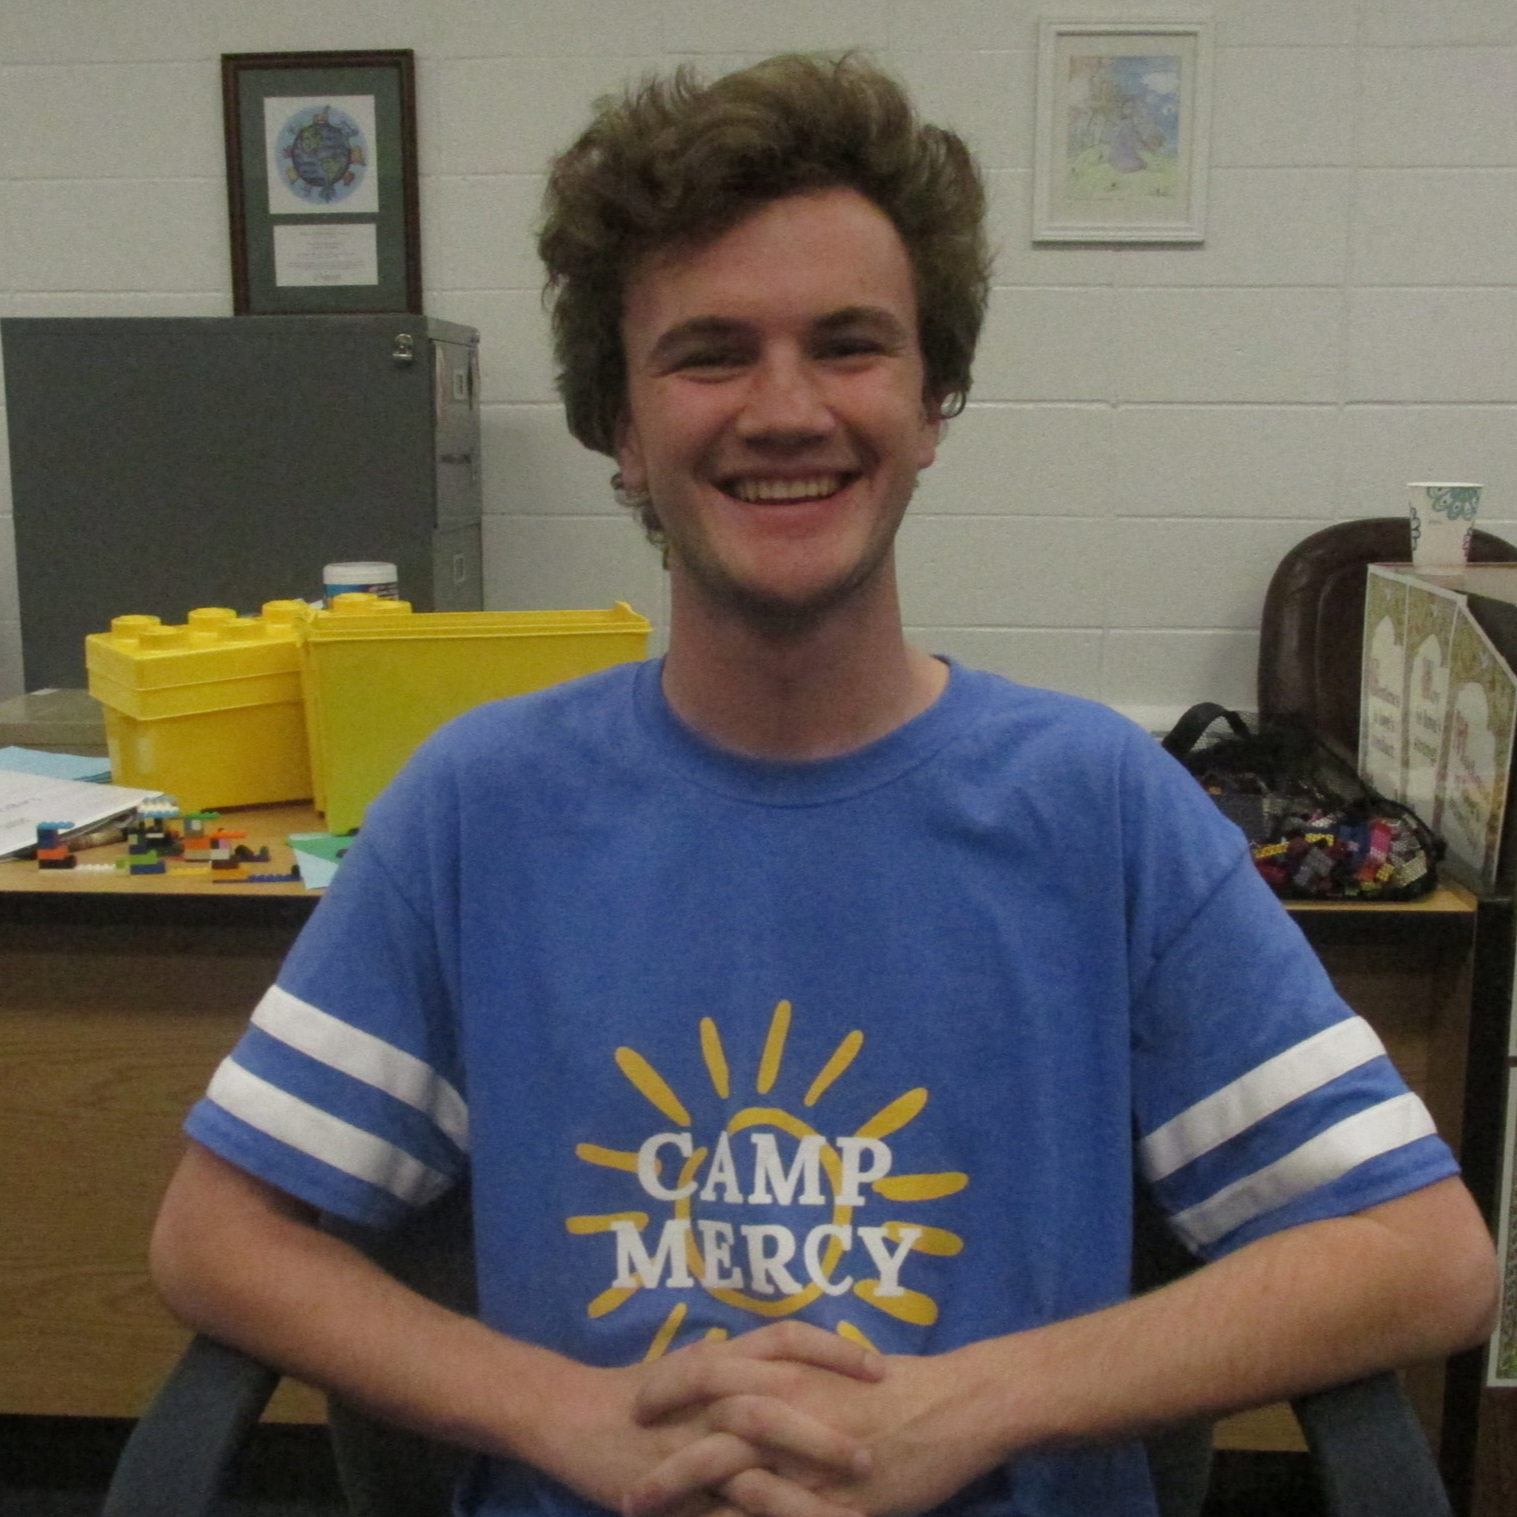 Ben Clancy - Hi! I'm Ben Clancy. I graduated from Gonzaga College High School in 2017 and will be a Junior at Boston College this Fall. I love Math, Computer Science, am on the board of a music club at my school, and am super excited to work at Camp Mercy.